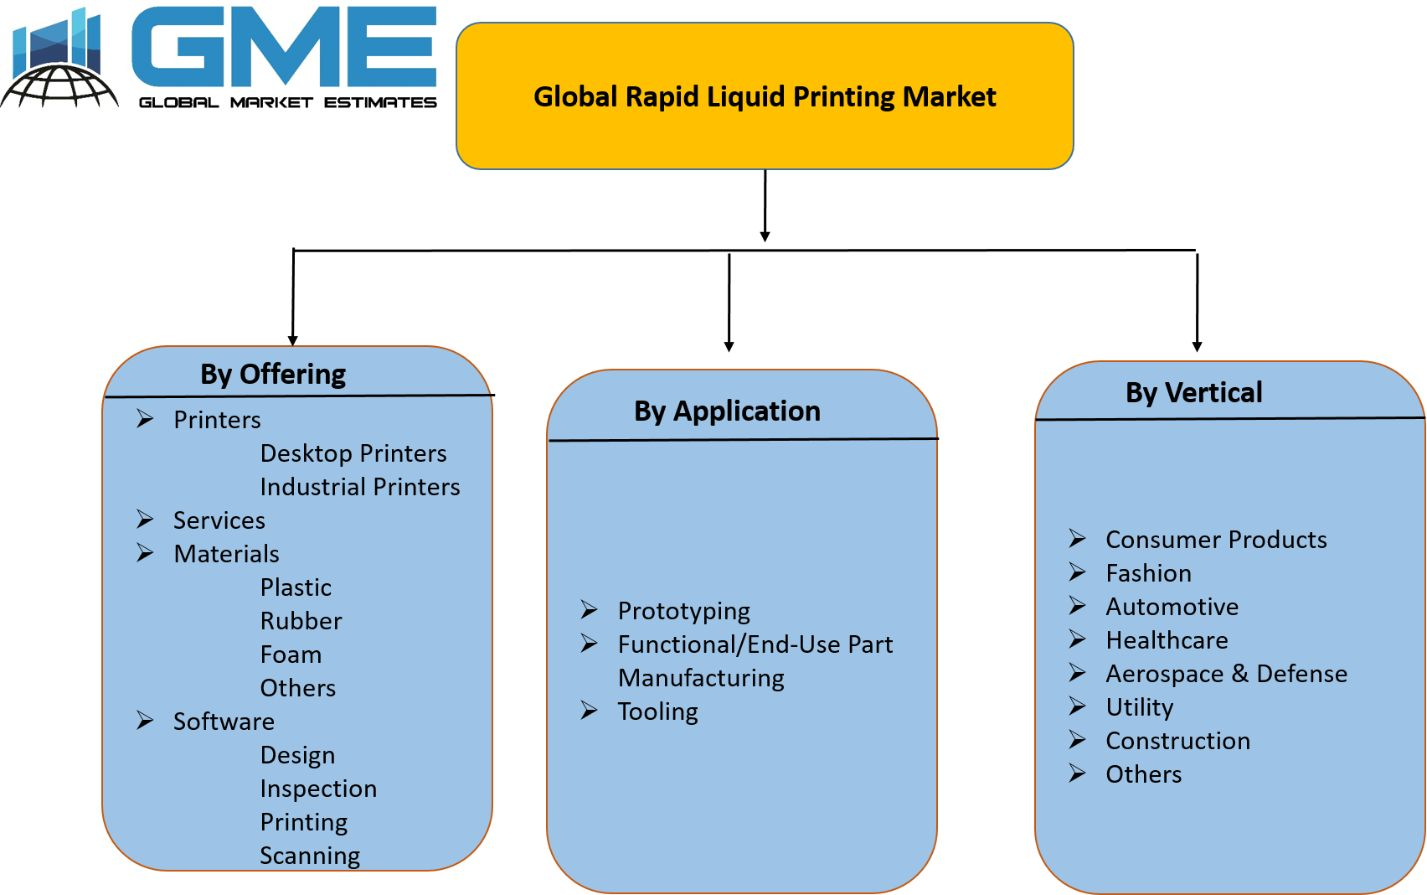 Global Rapid Liquid Printing Market - Segments